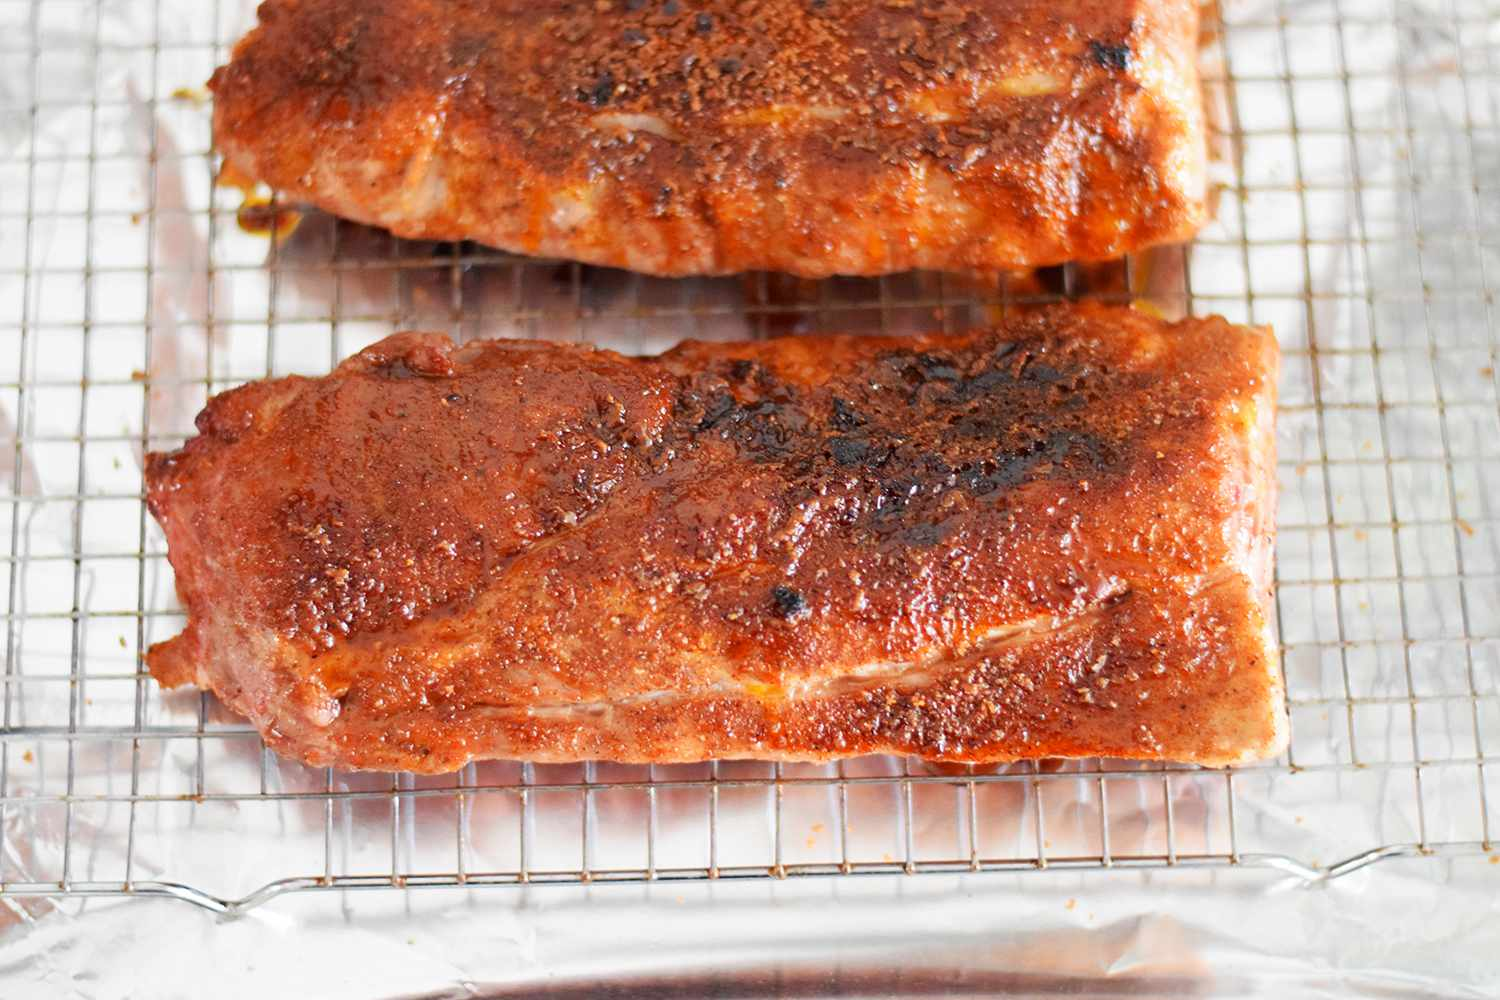 The ribs are broiled to get a nice crust